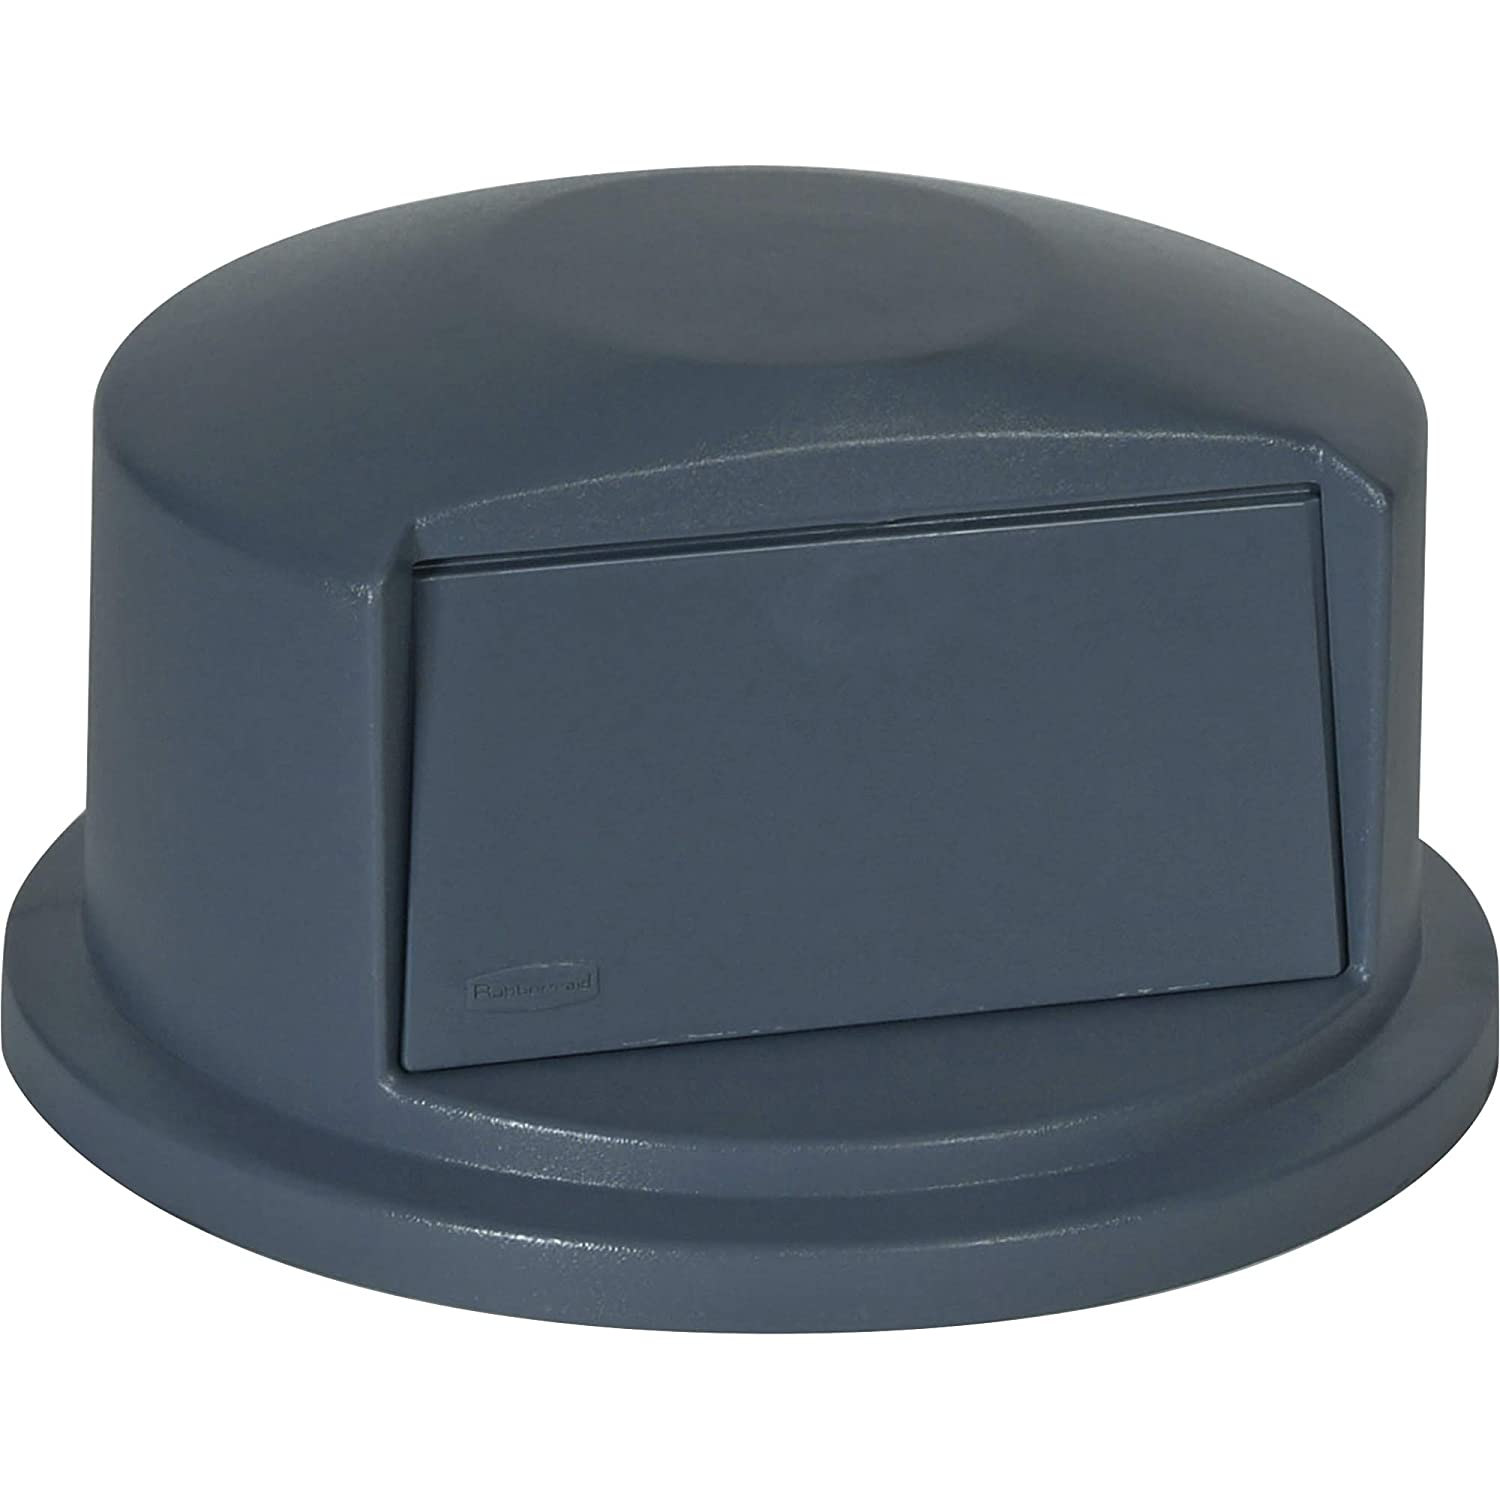 Rubbermaid Commercial Heavy-Duty BRUTE Dome Swing Door Lid f NEW before selling List price Top